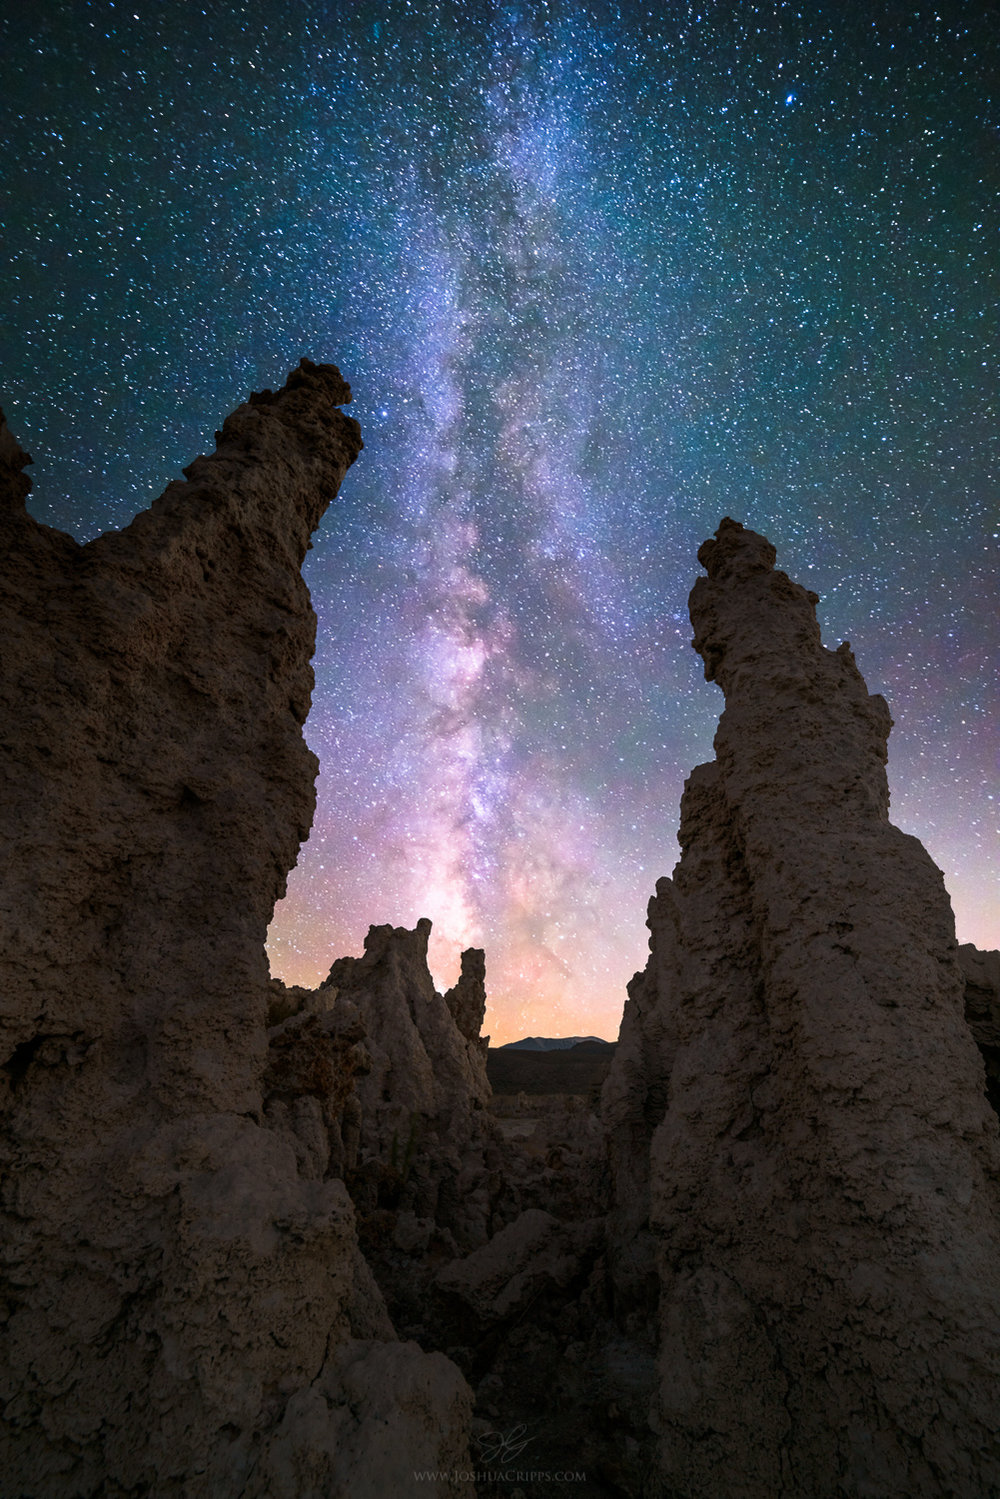 Sierra-Nevada-Mono-Lake-Milky-Way.jpg